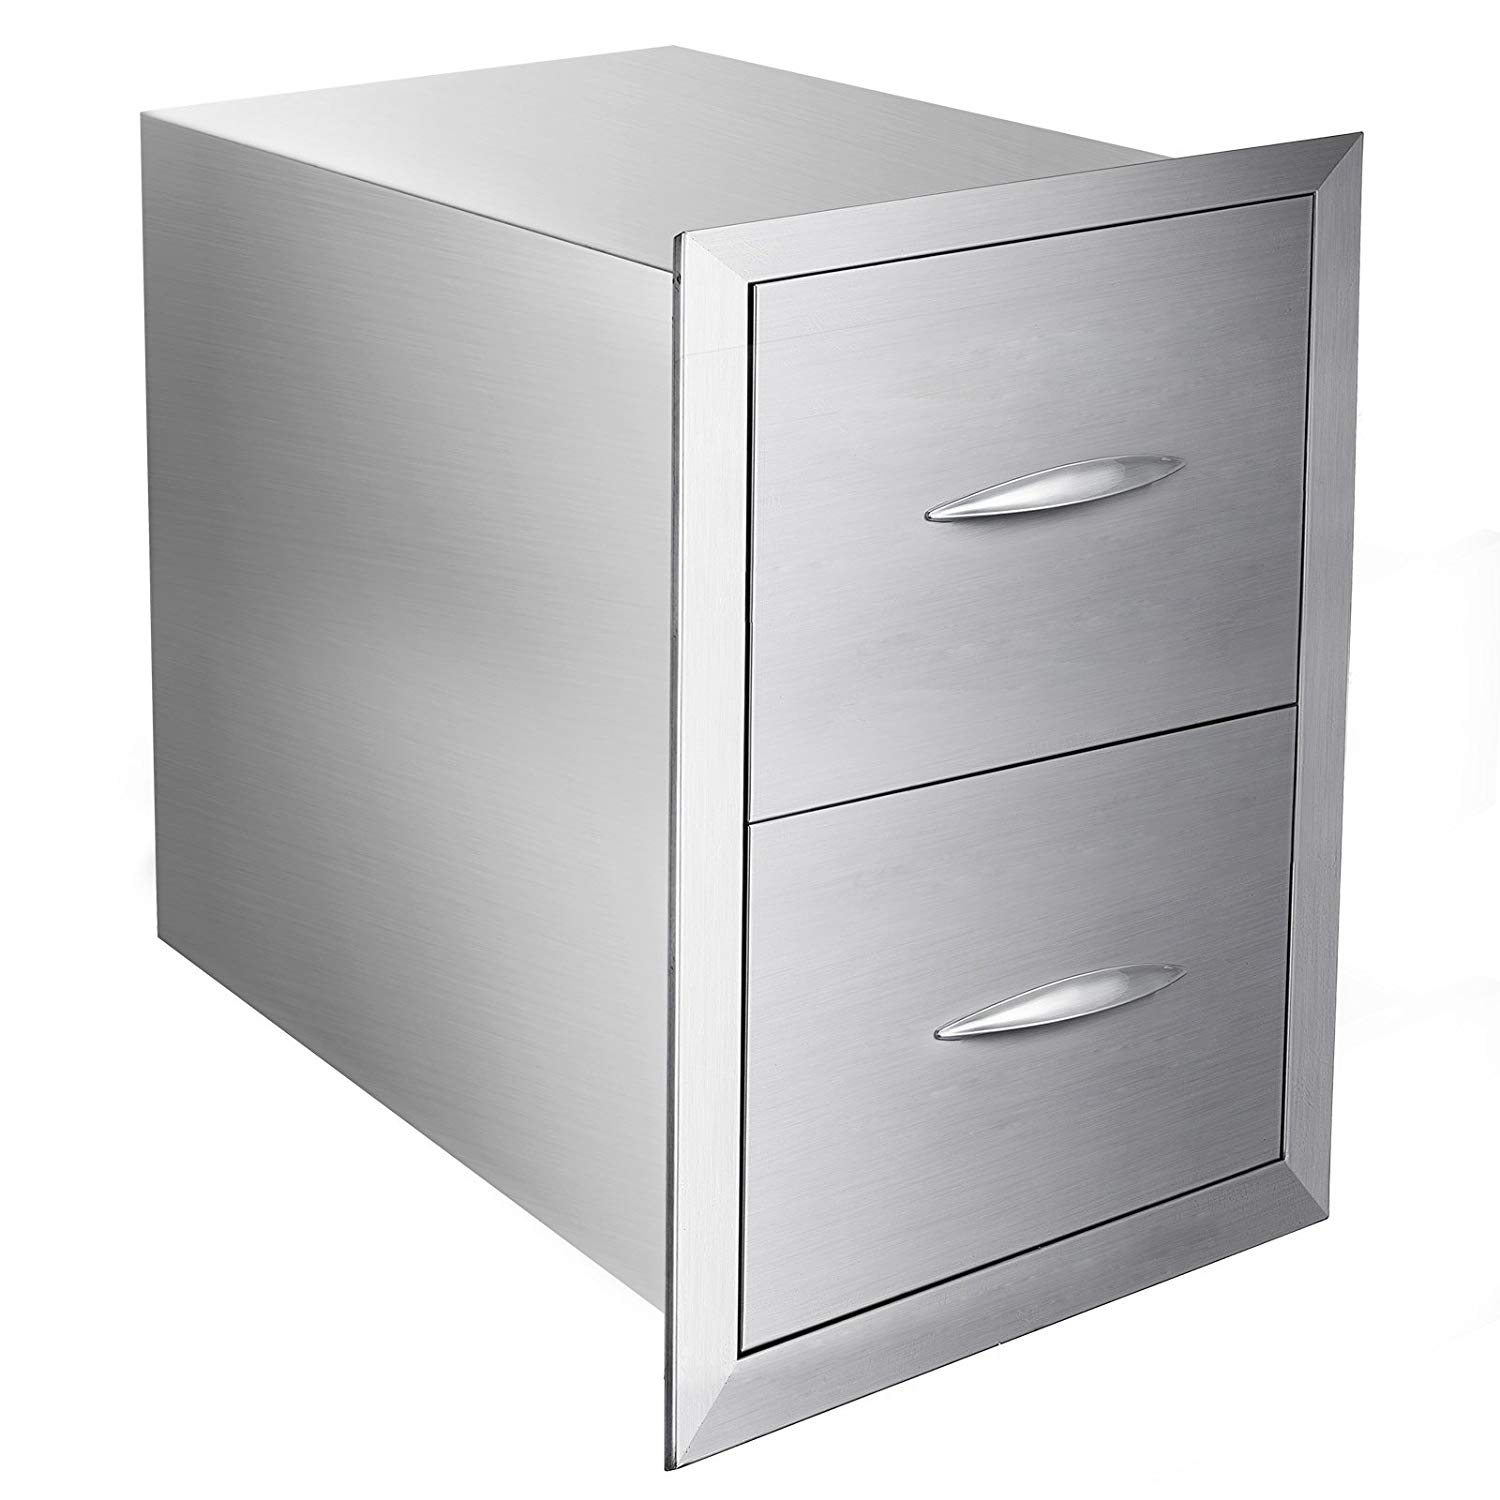 """Mophorn Outdoor kitchen drawer 18""""x15"""" Stainless steel BBQ Island Drawer storage with Chrome Handle Double Access Drawer Flush Mount Sliver Double Access Drawer (24""""x18"""" Double Access Drawer)"""